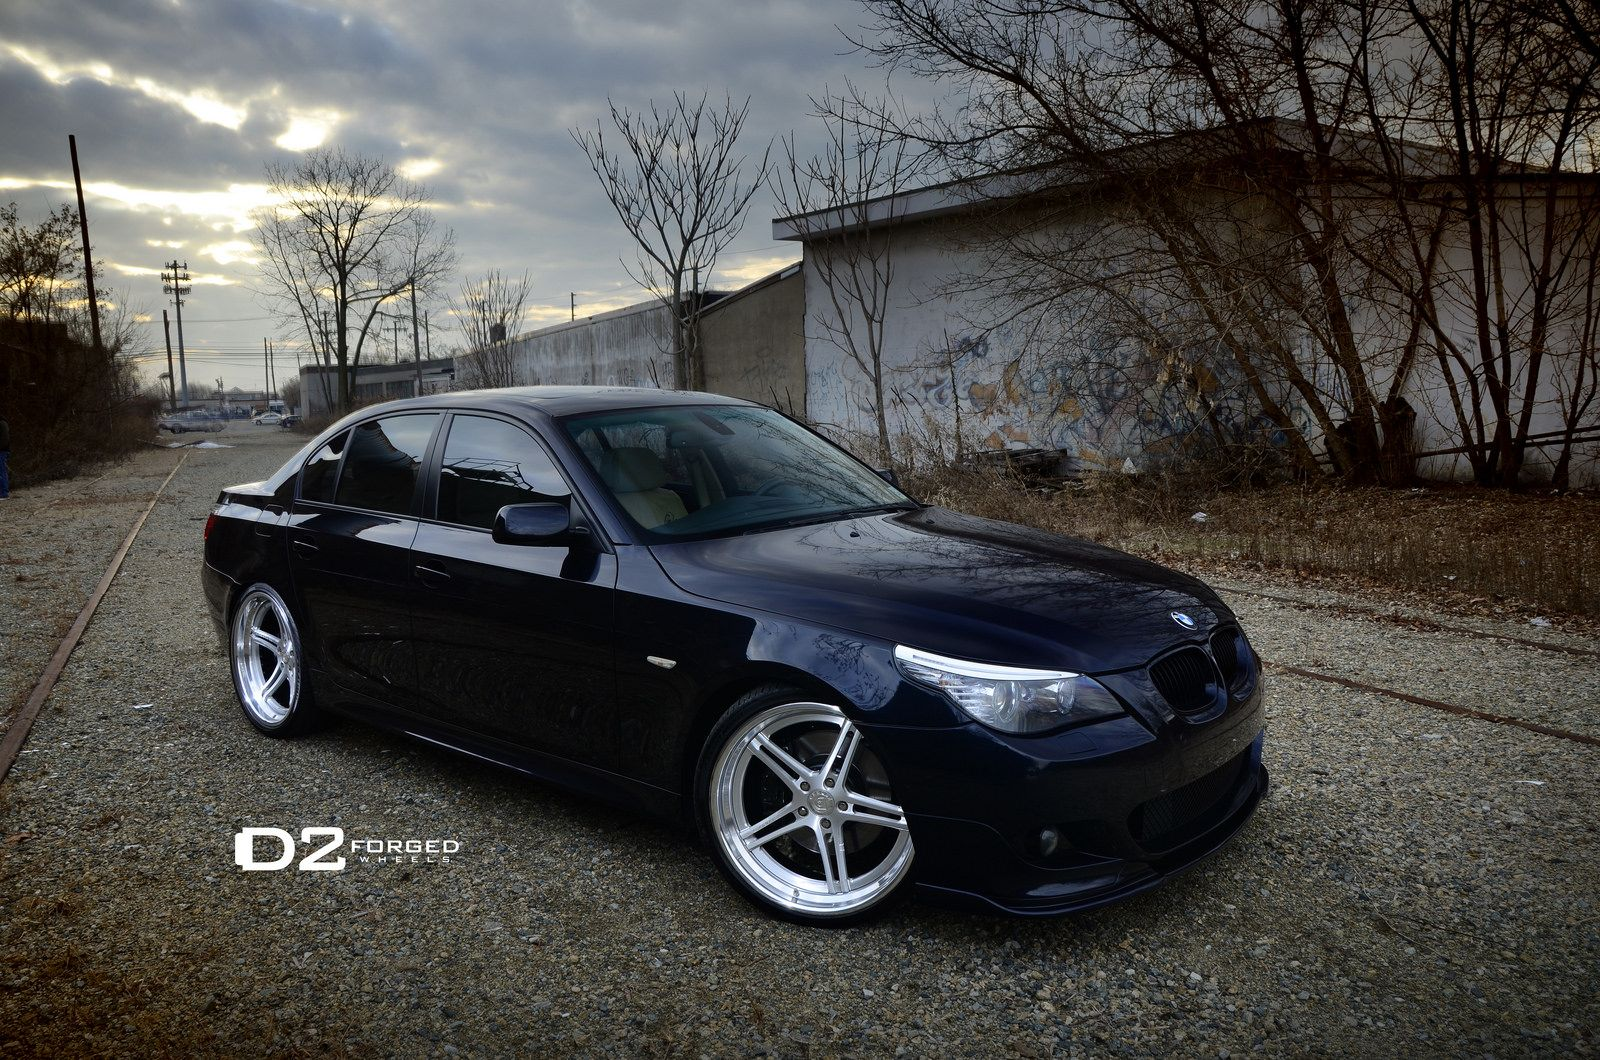 bmw e60 5series 21 d2forged cv3 concave wheels stance bmw e60 pinterest d photos and. Black Bedroom Furniture Sets. Home Design Ideas